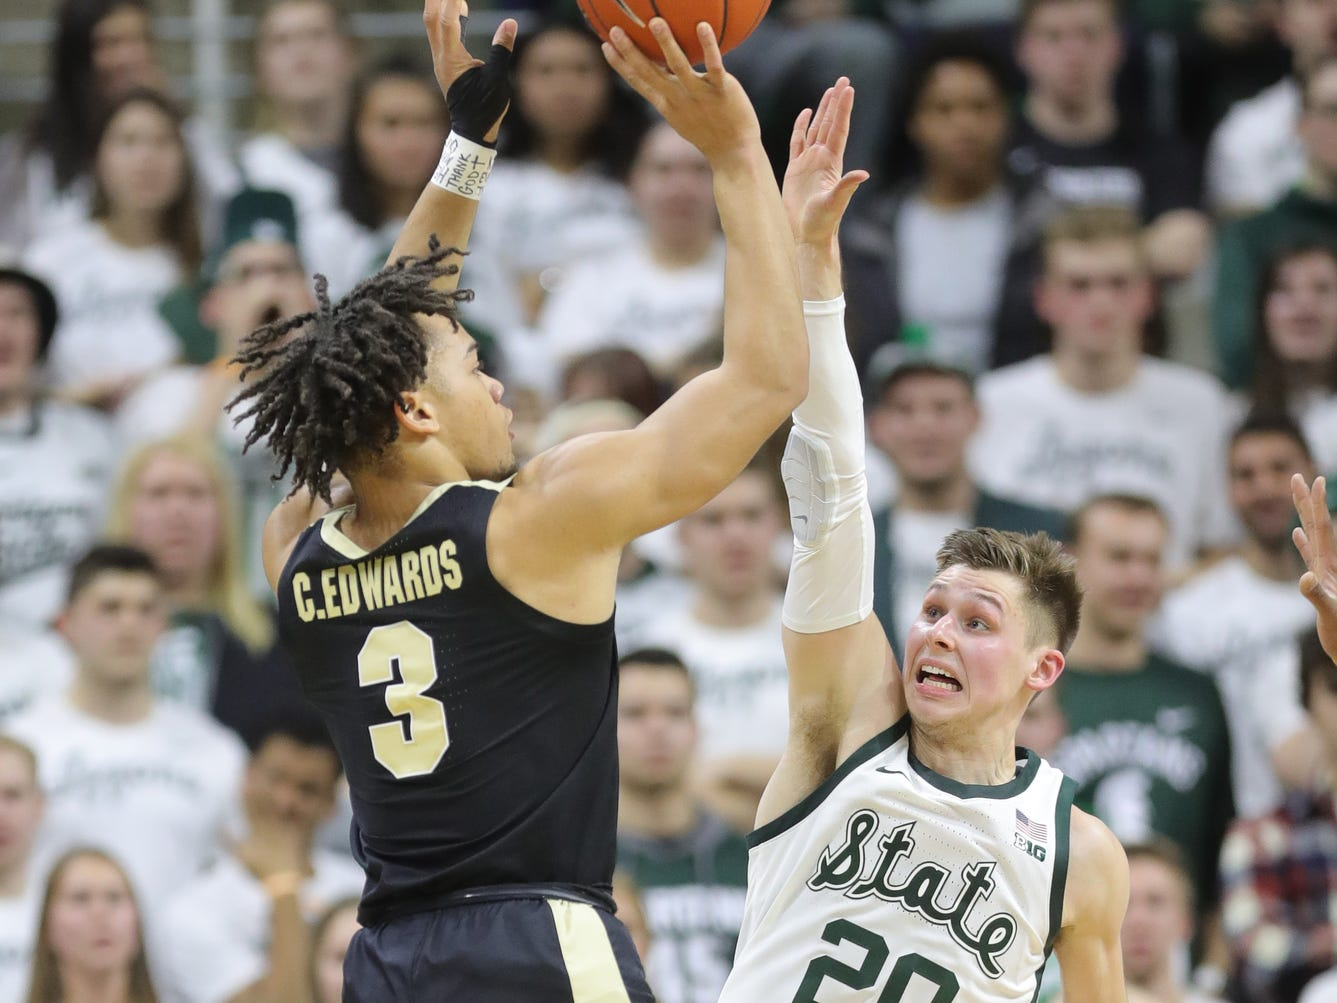 Michigan State guard Matt McQuaid defends against Purdue guard Carsen Edwards during first half action Tuesday, Jan. 8, 2019 at the Breslin Center in East Lansing, Mich.